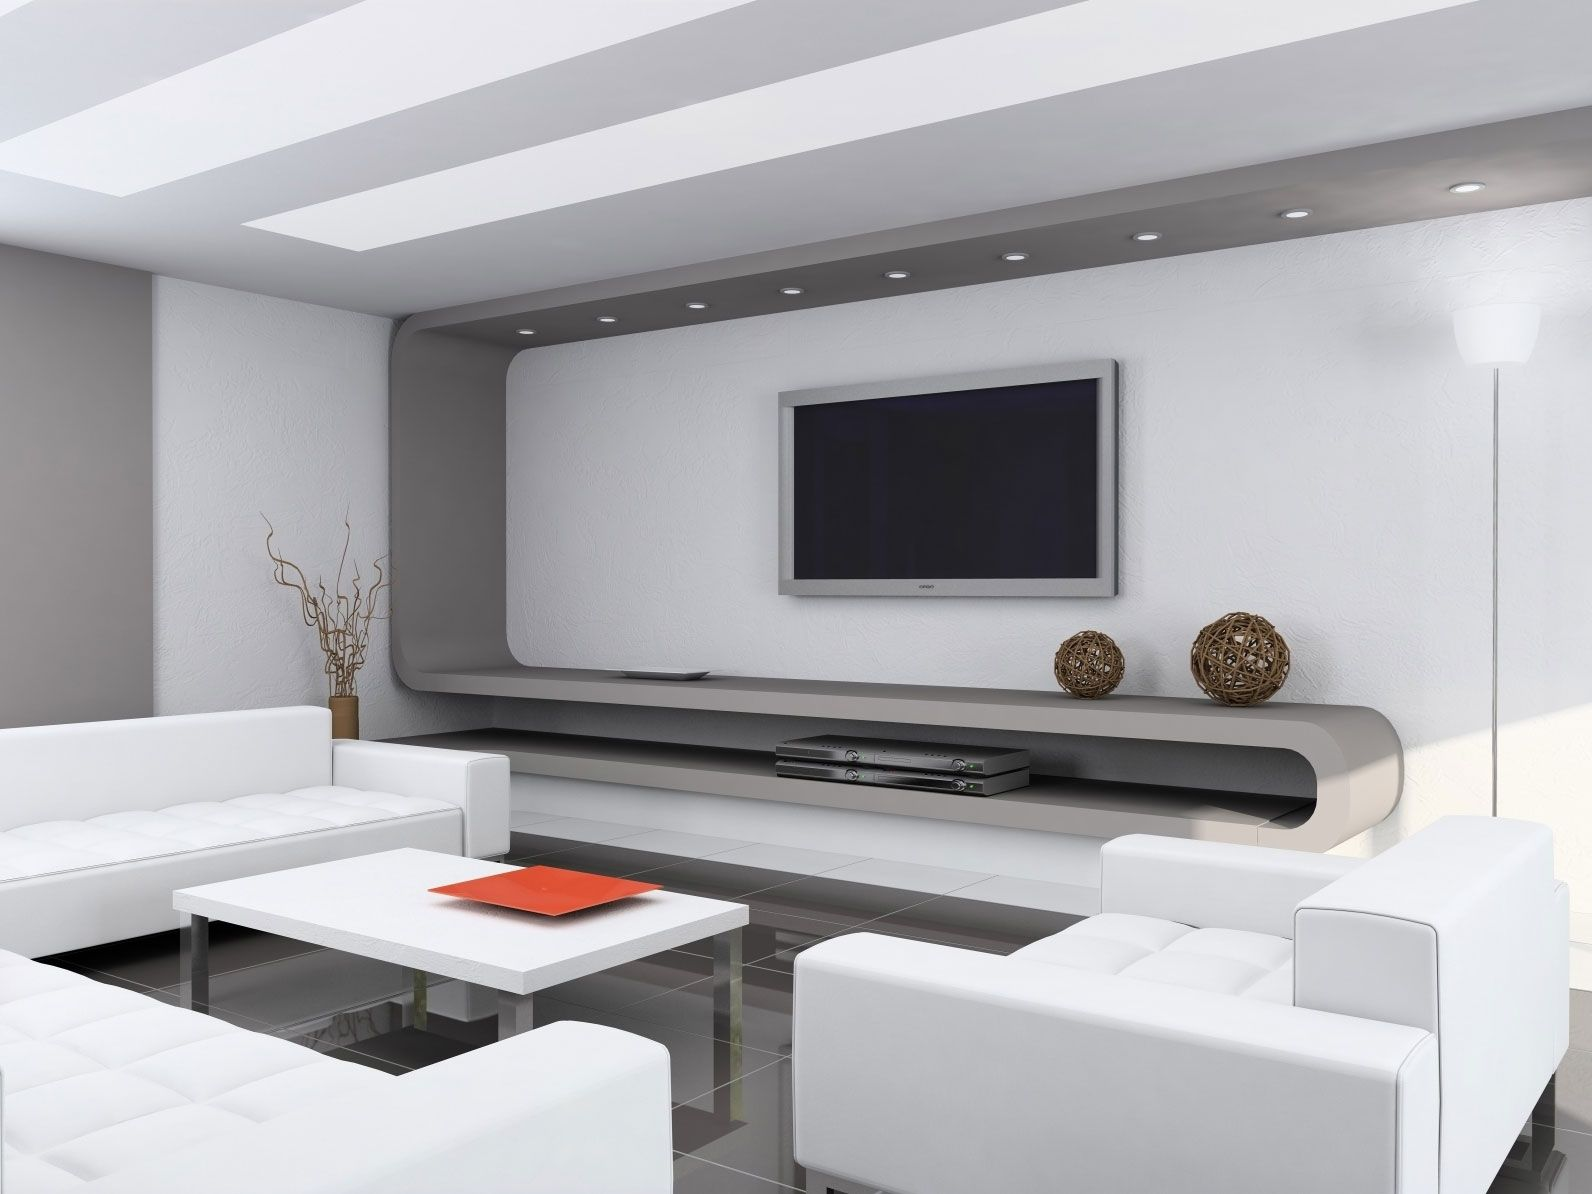 35 BEST INTERIOR DESIGNS YOU MUST BE SEARCHING FOR | Interiors ...